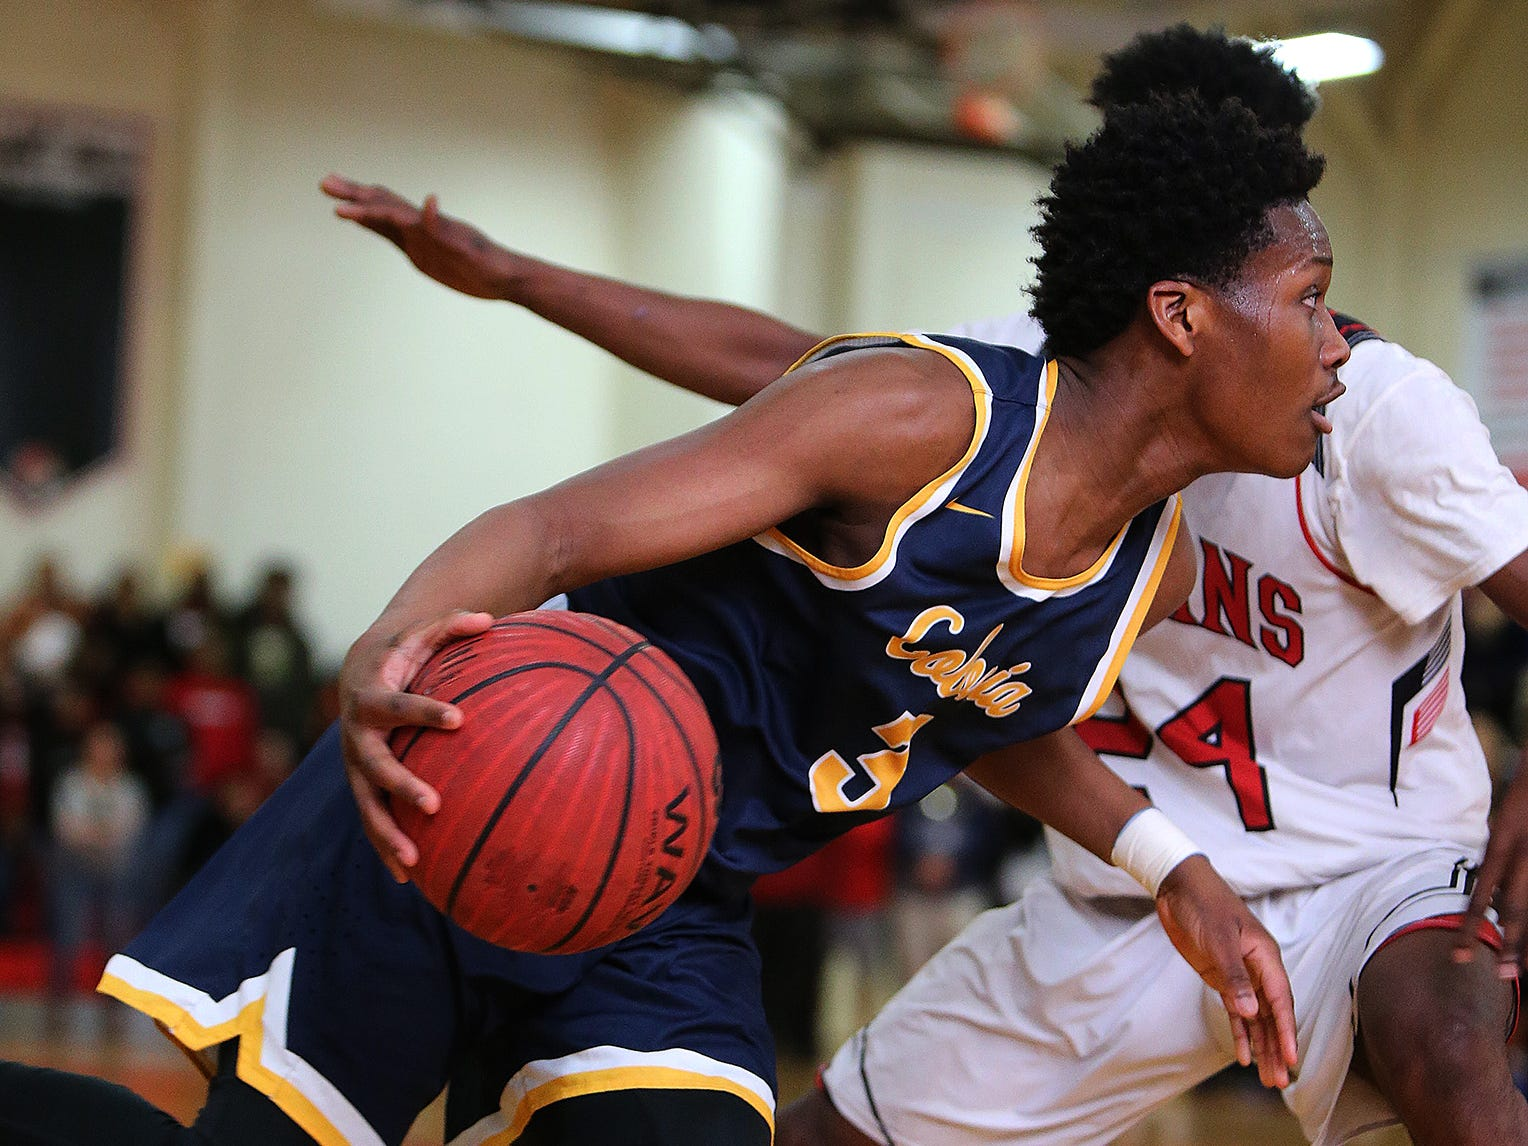 Colonia's Ola Aridegbe (3) moves the ball against Rahway during a North 2 Group III semifinal on Saturday March 2, 2019 at Rahway High School.